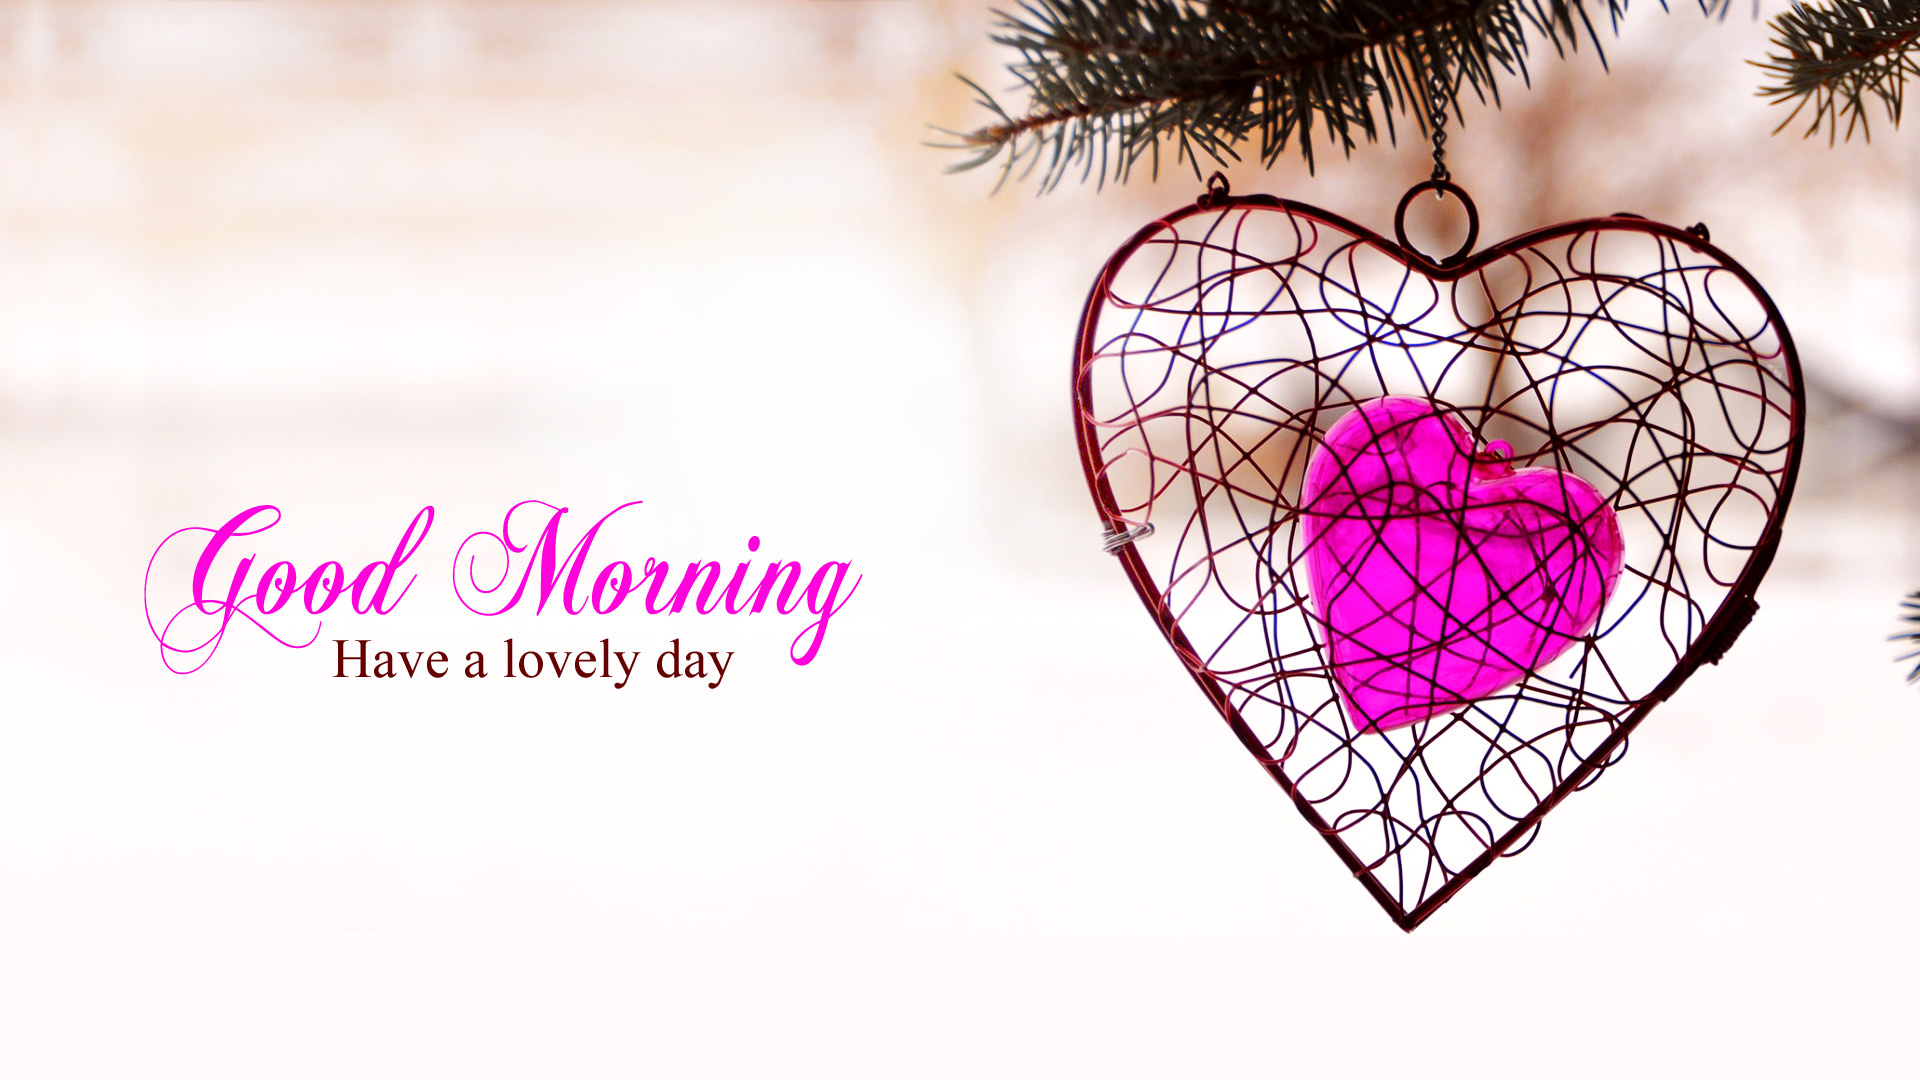 Gm Wallpaper In Love : Good Morning Wallpaper with Flowers, Full HD 1920x1080 GM Images